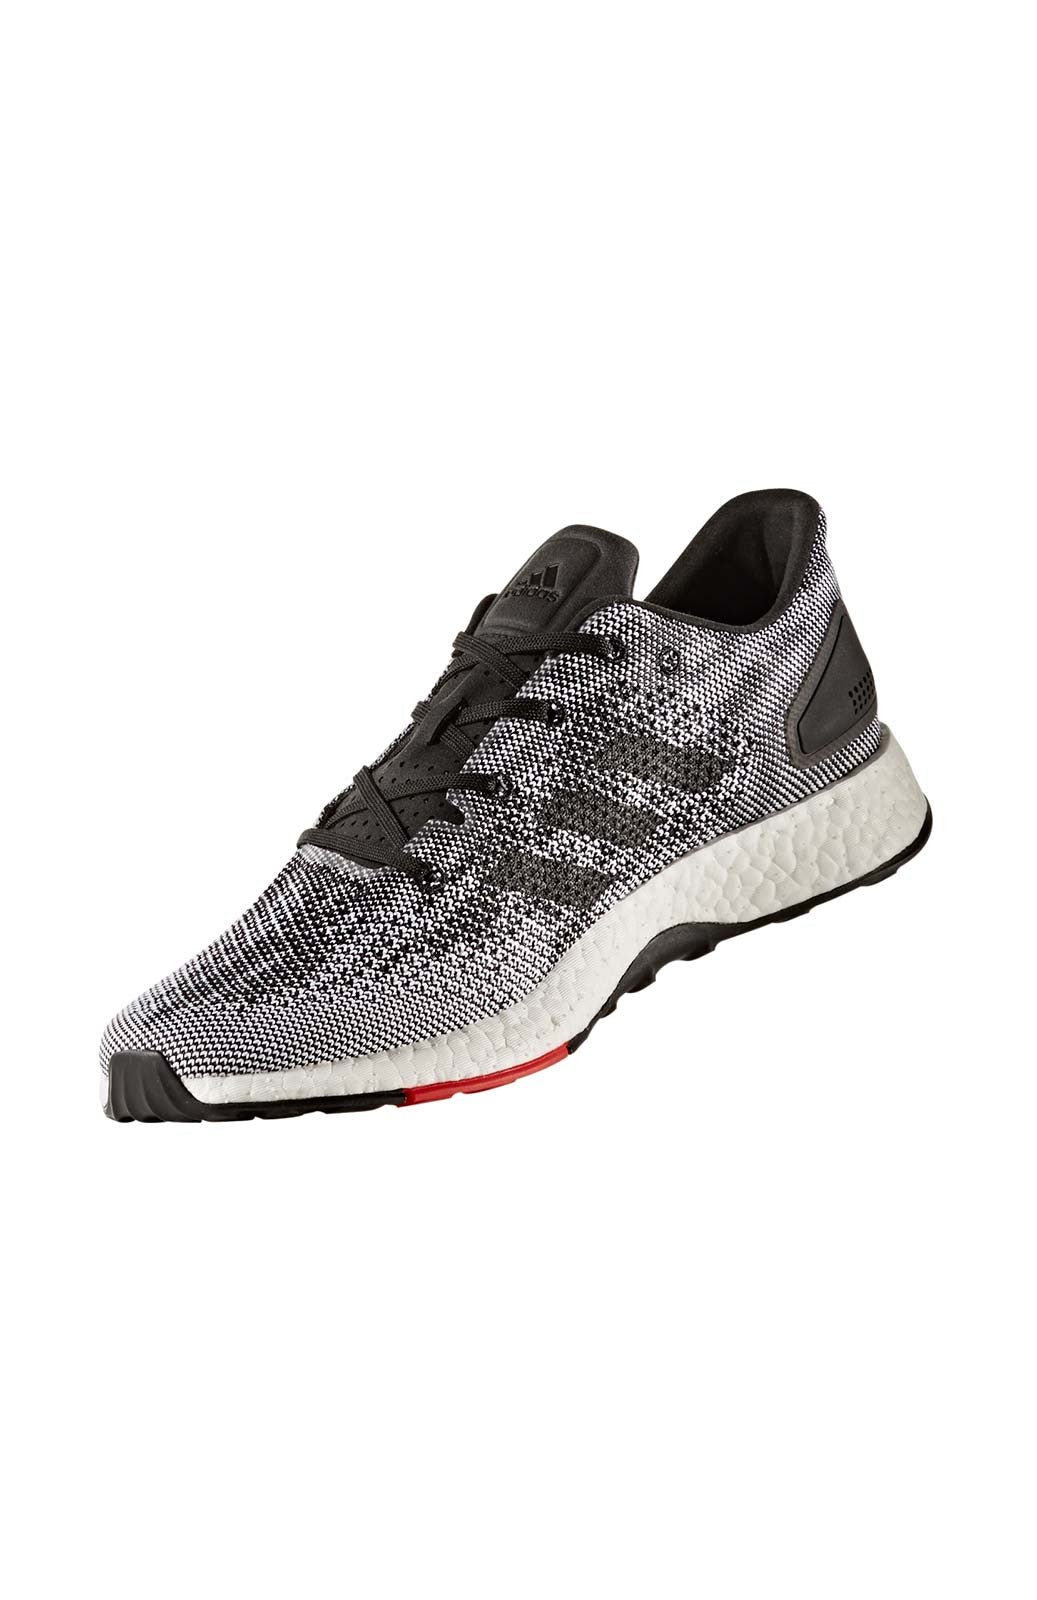 ADIDAS Men's Pure Boost DPR - Black/ Grey image 2 - The Sports Edit